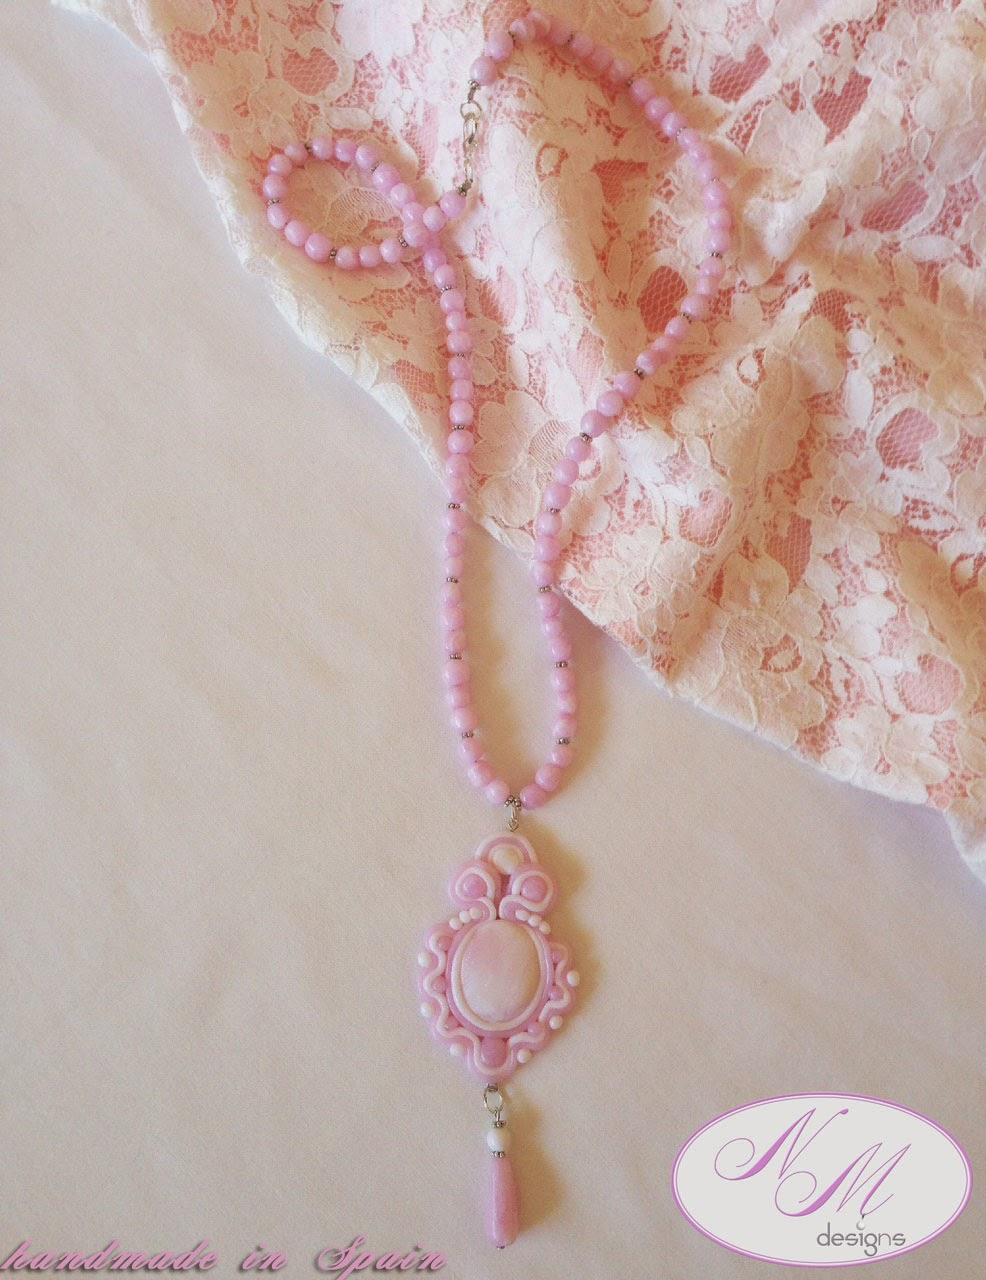 """Pink Lace"" NM Designs"